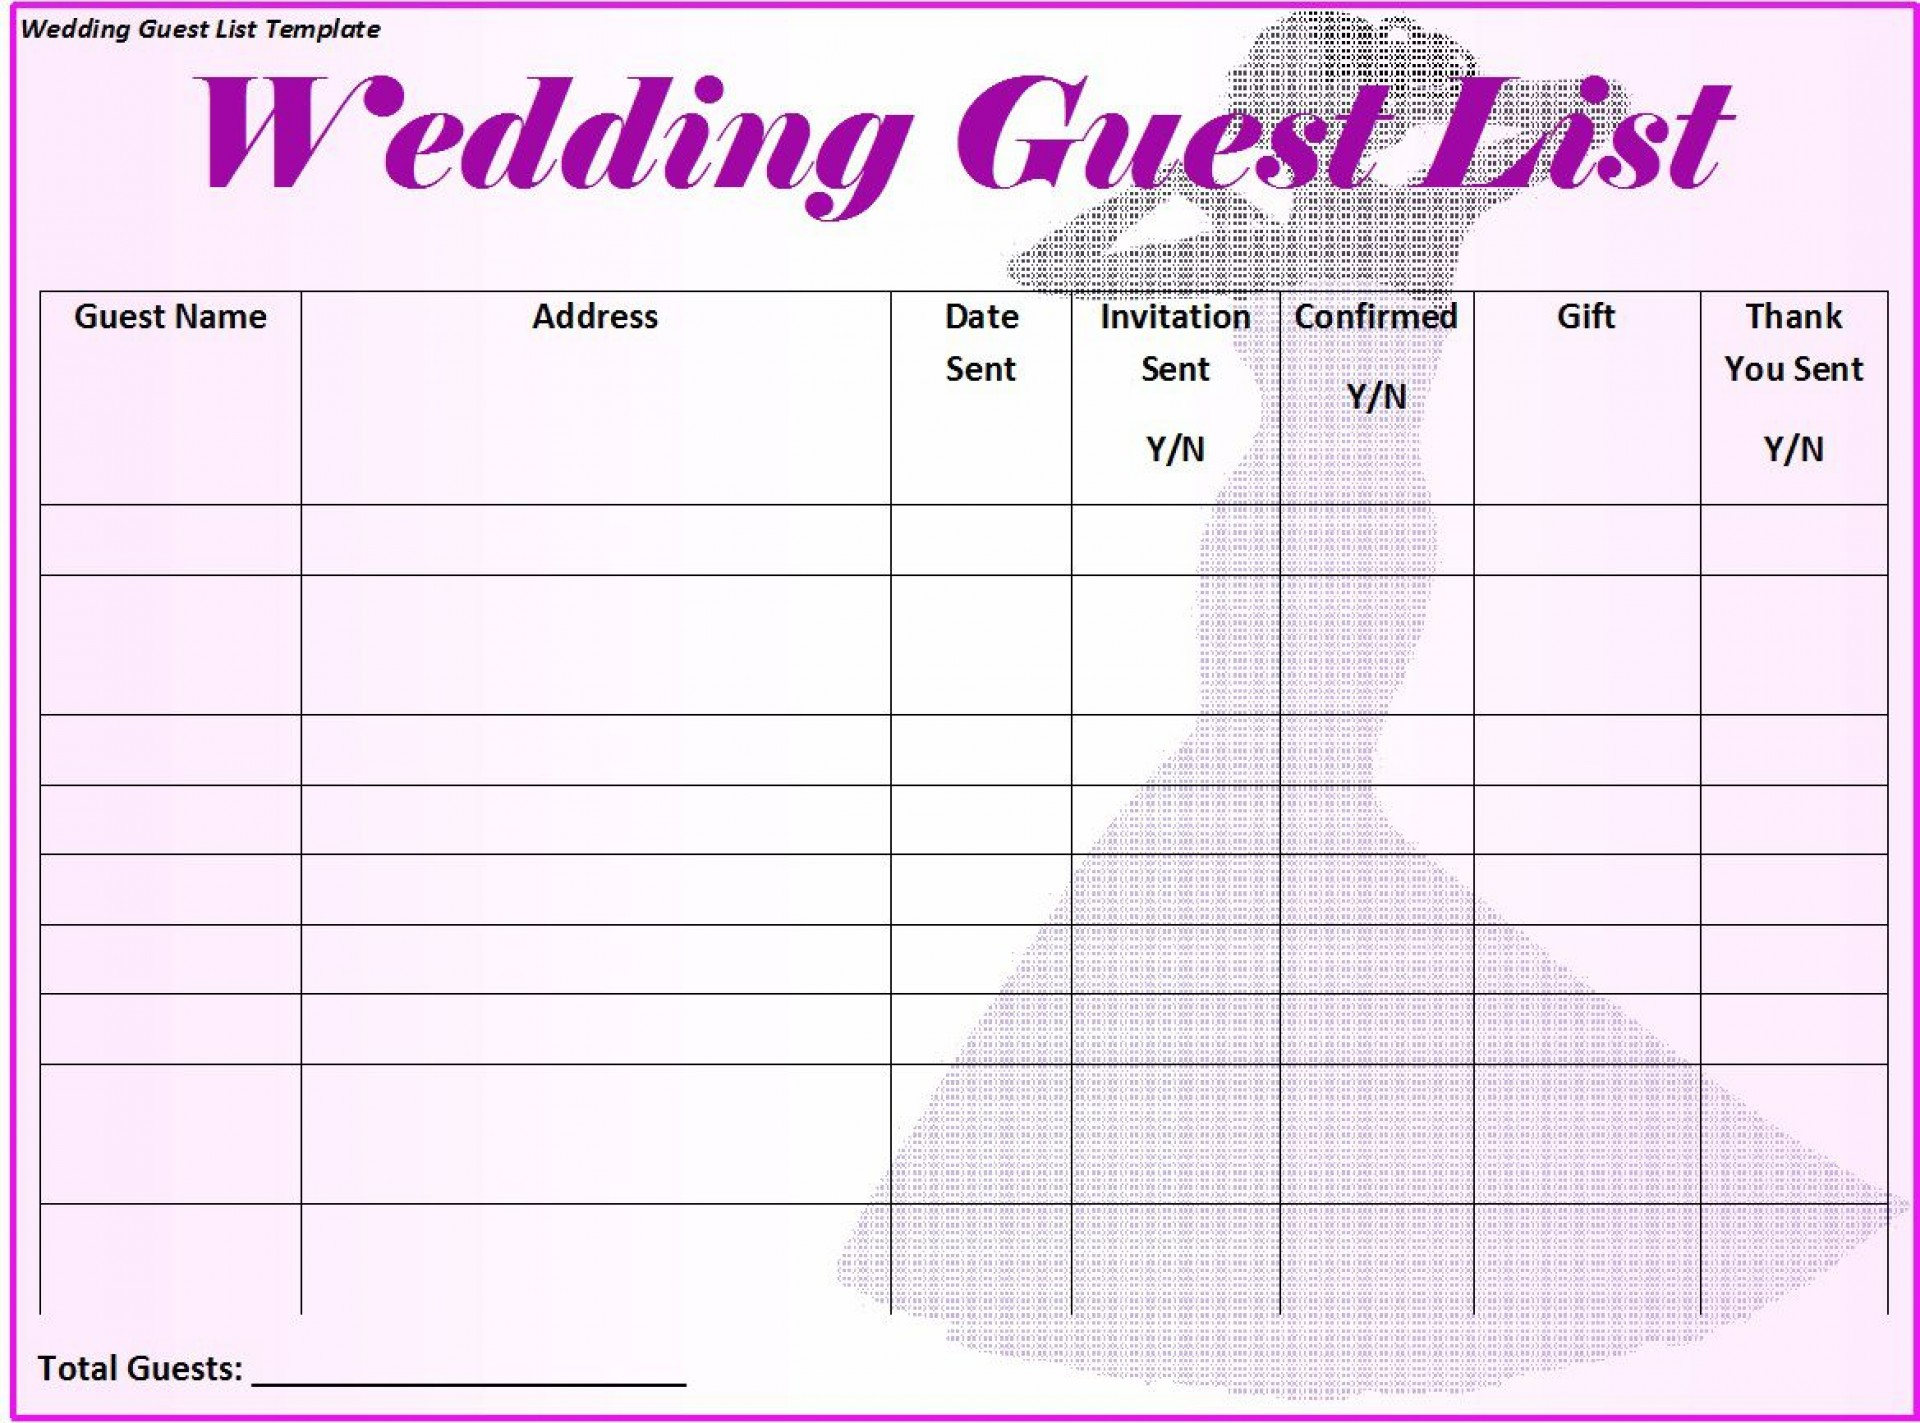 009 Incredible Party Guest List Template Excel Free High Definition 1920